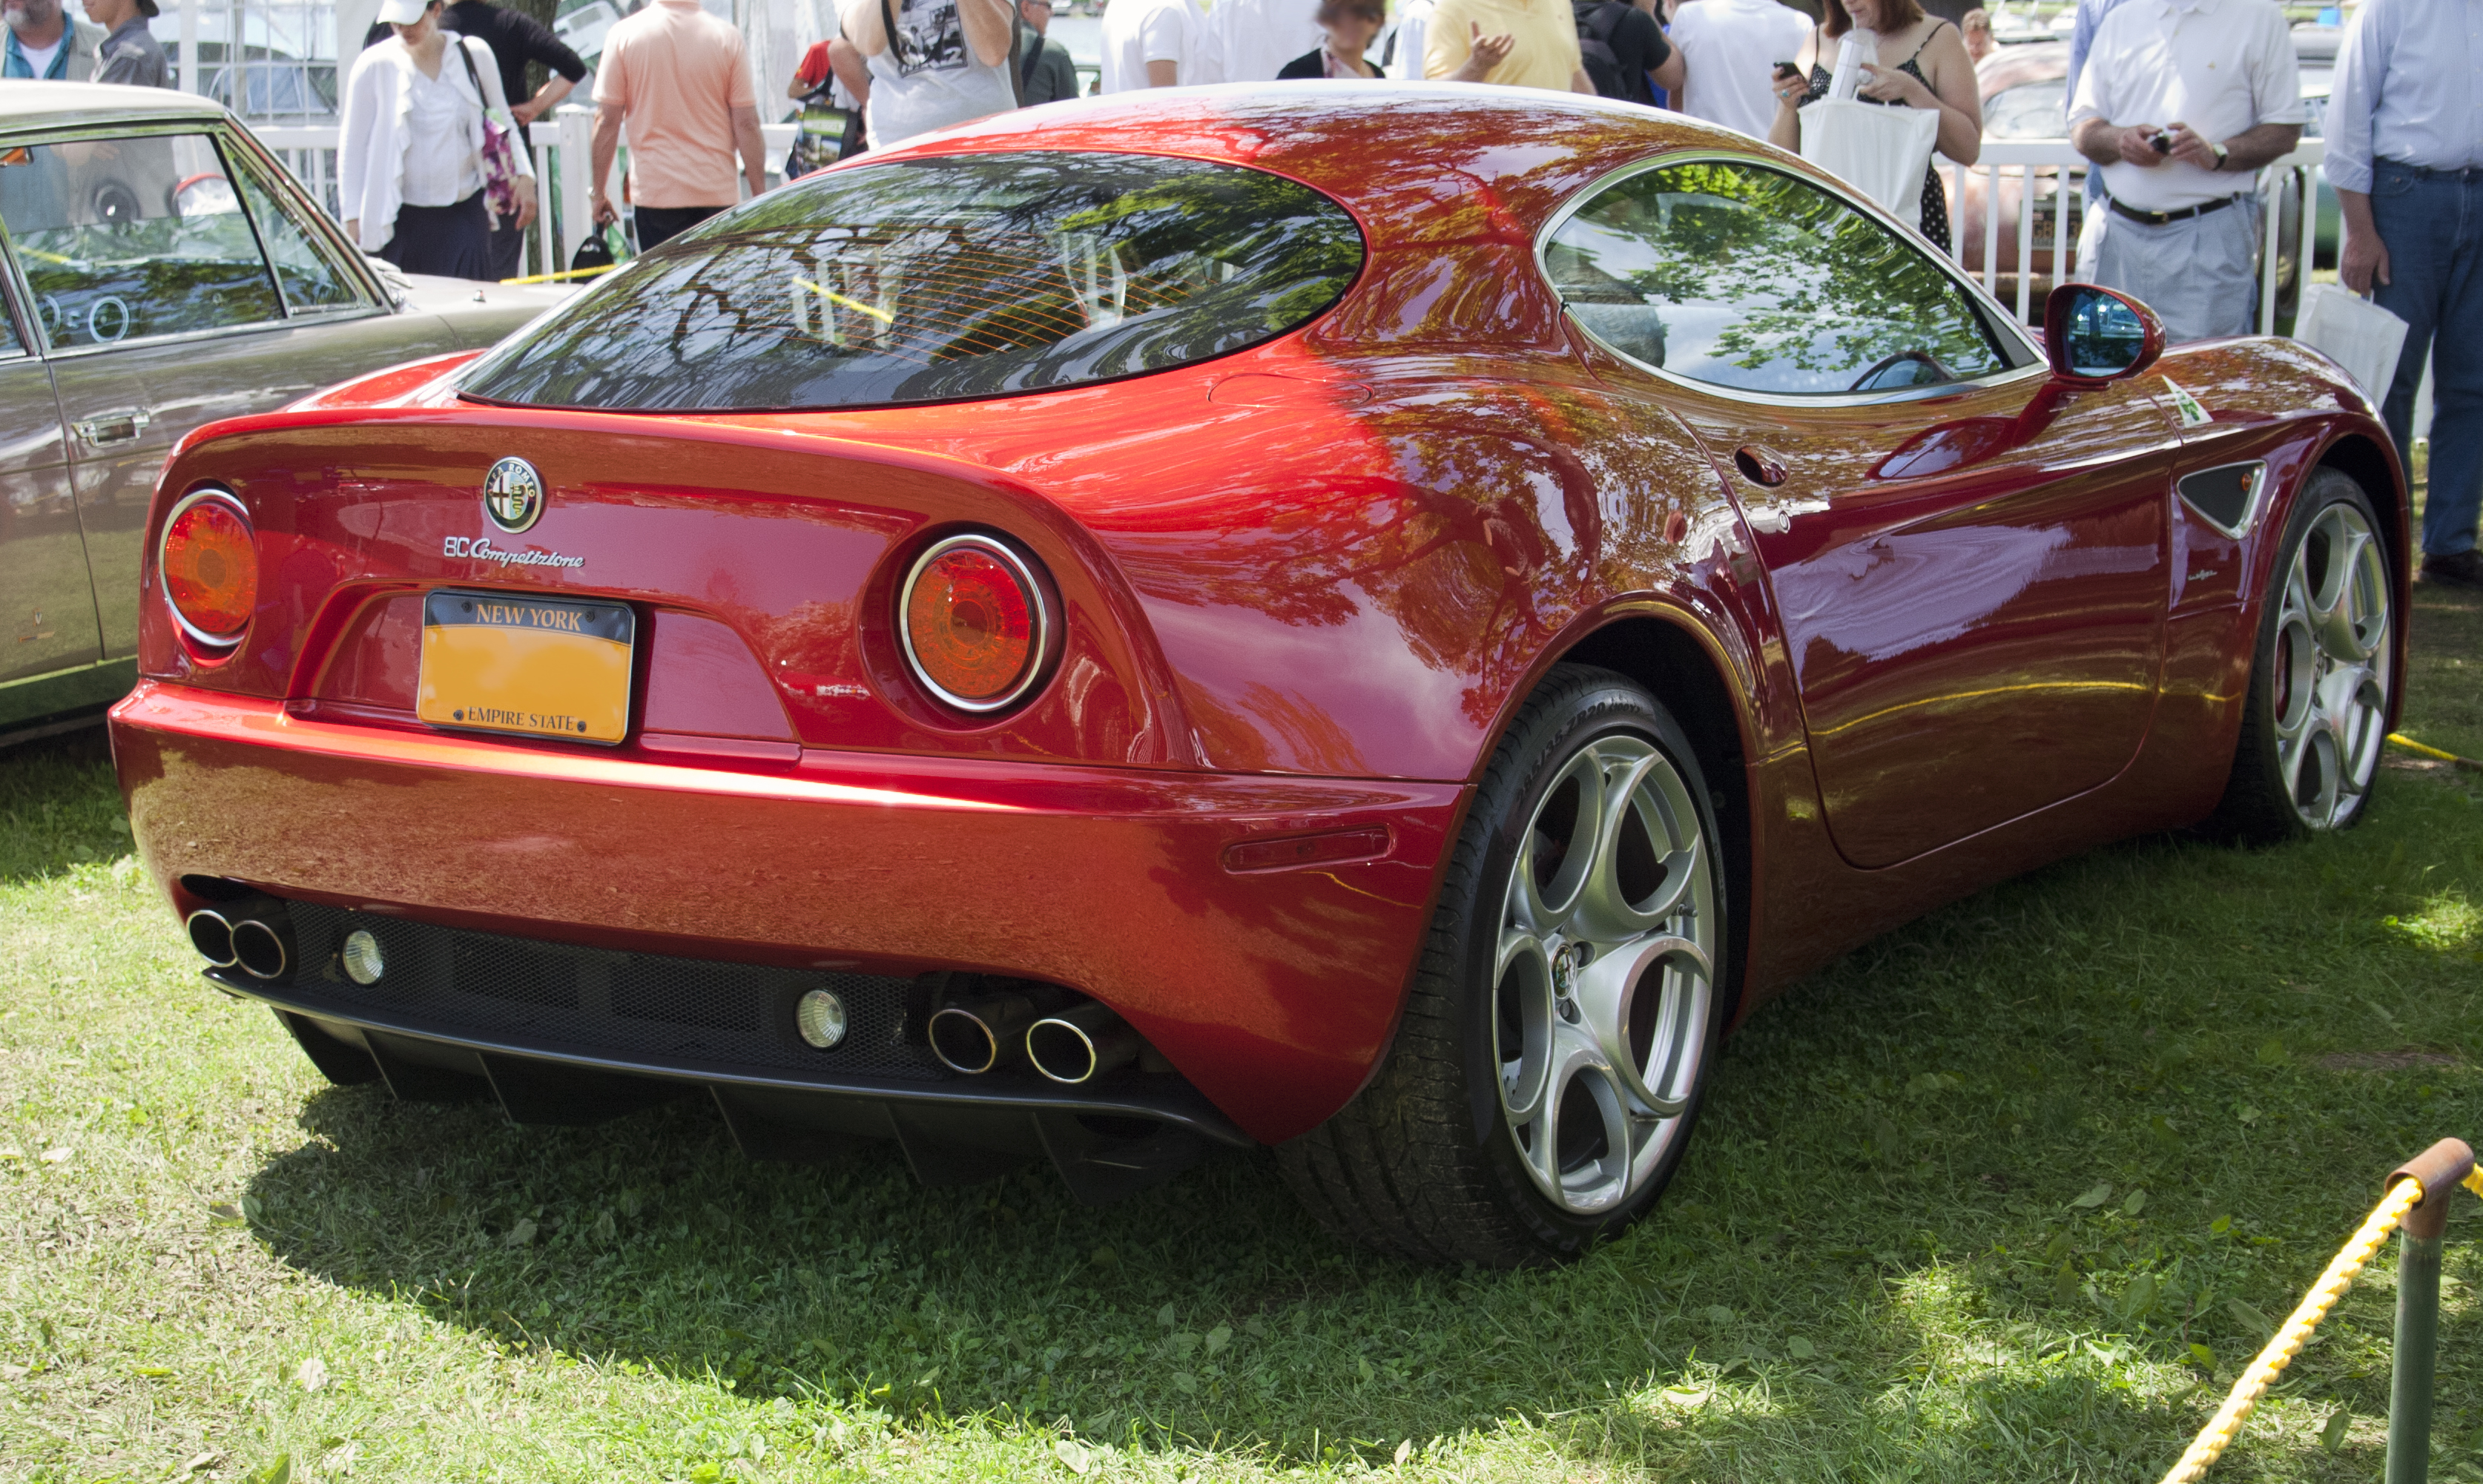 alfa romeo 8c competizione related images start 400. Black Bedroom Furniture Sets. Home Design Ideas